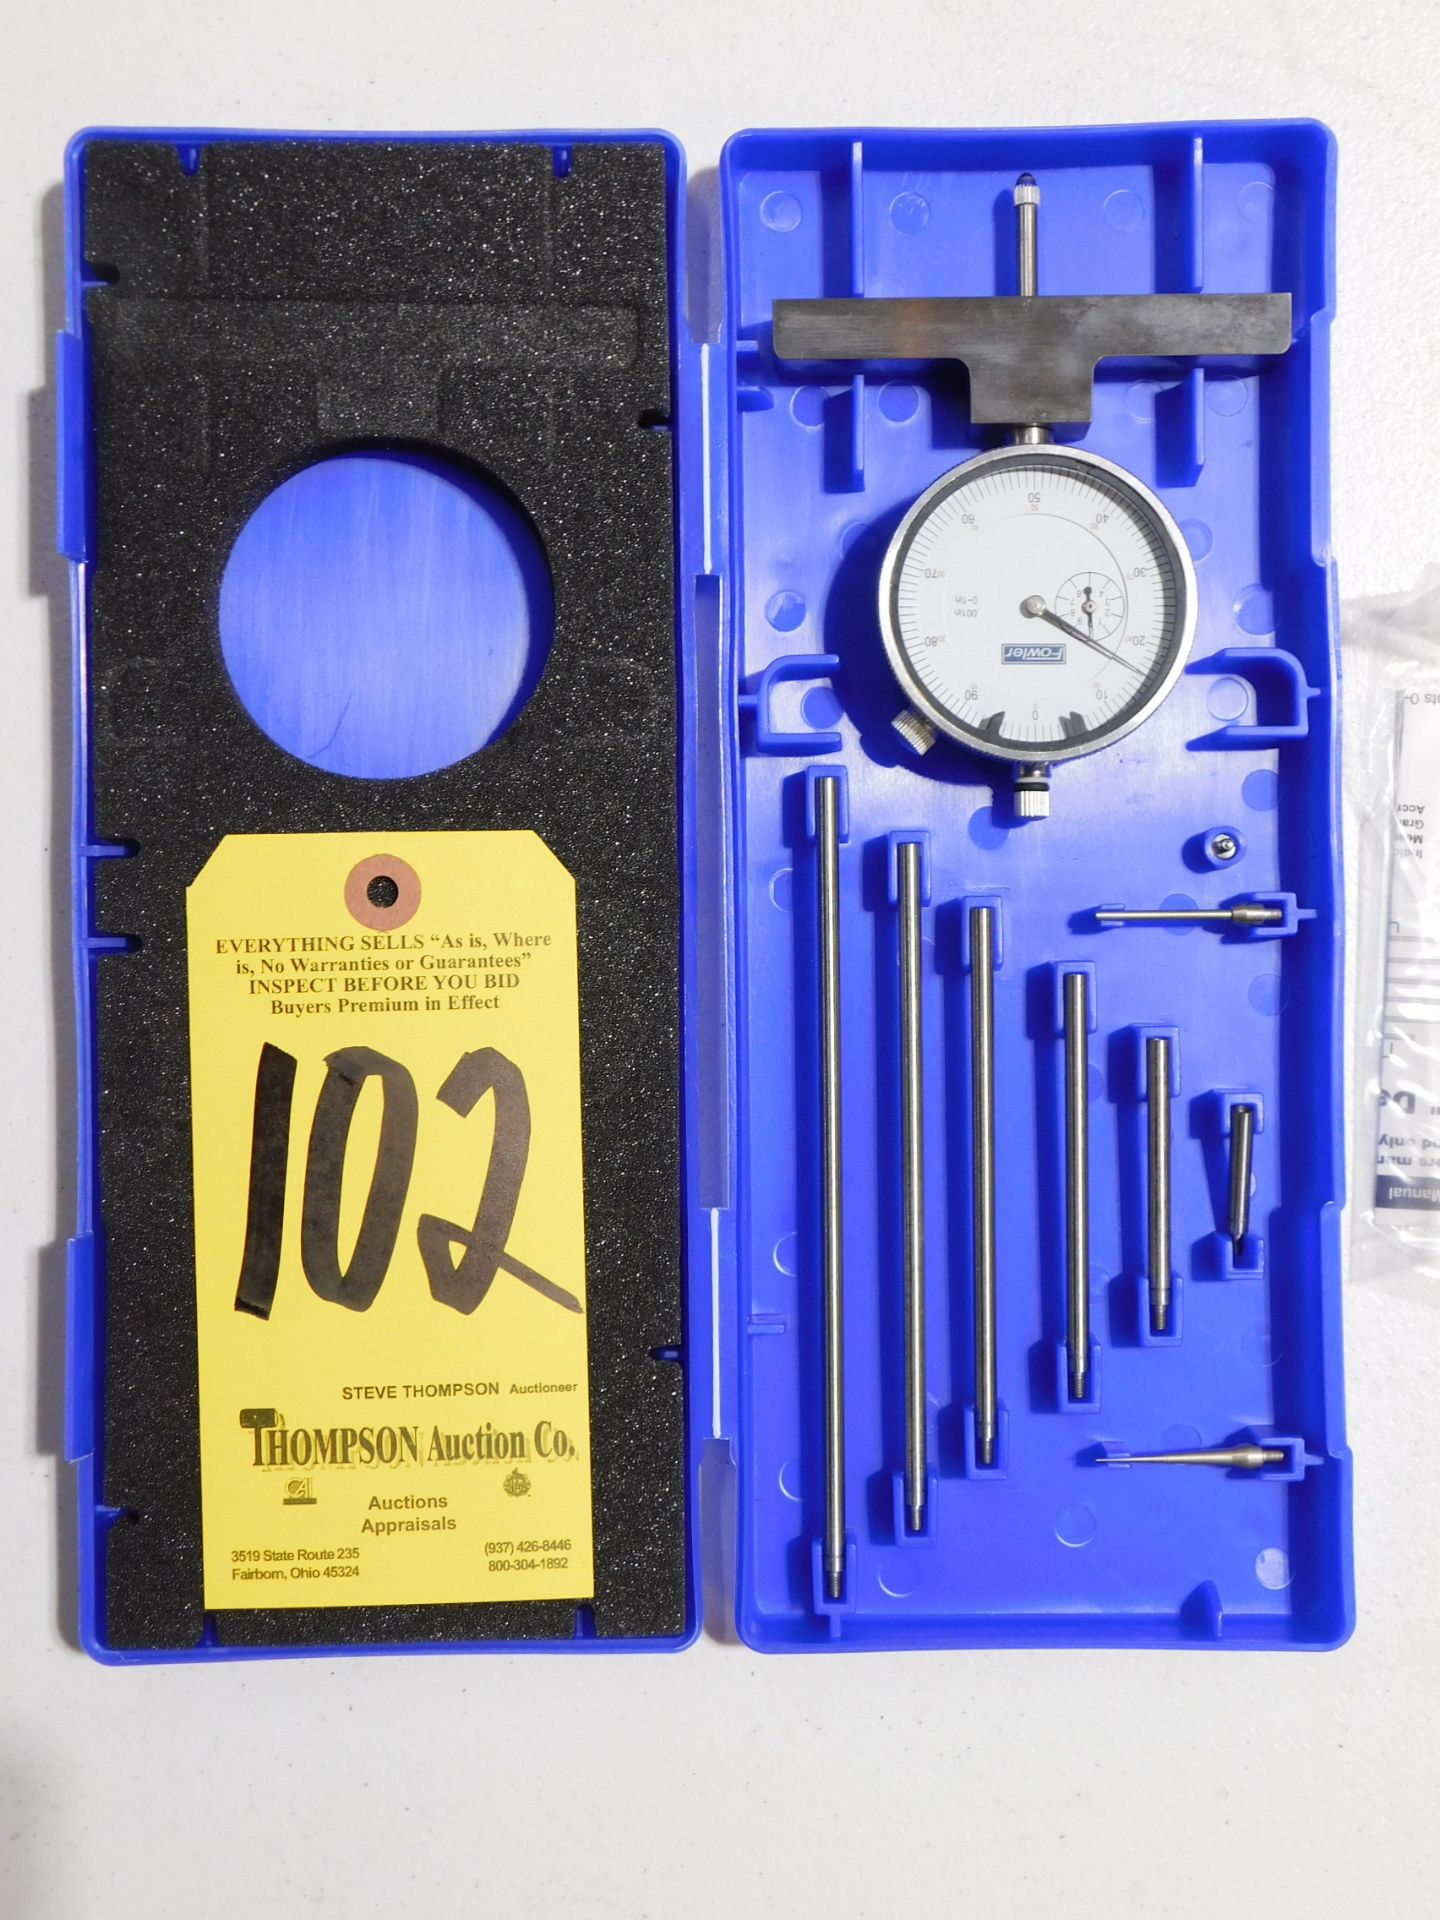 """Lot 102 - Fowler Dial Depth Gage, 0-22"""", Lot Location 3204 Olympia Dr. A, Lafayette, IN 47909"""